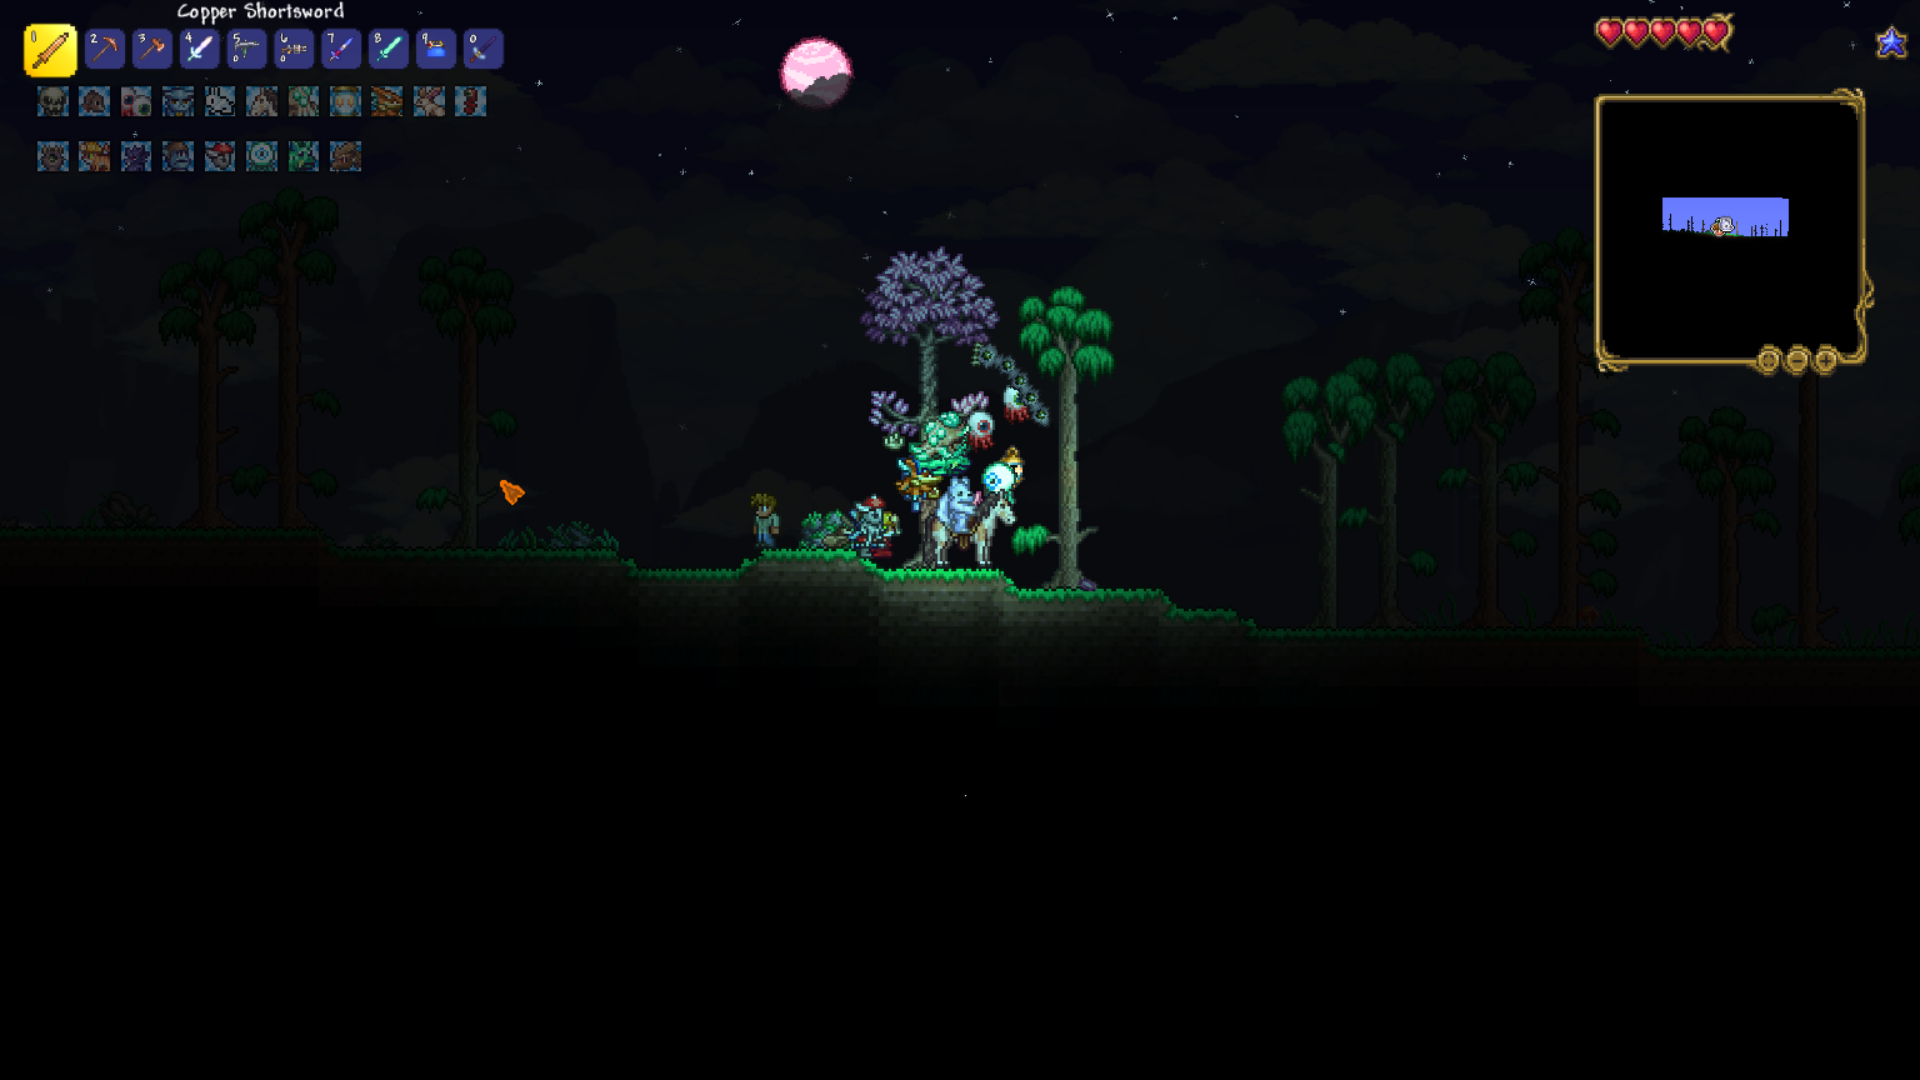 Terraria__Slimeassic_Park_9_16_2020_6_04_38_PM.png